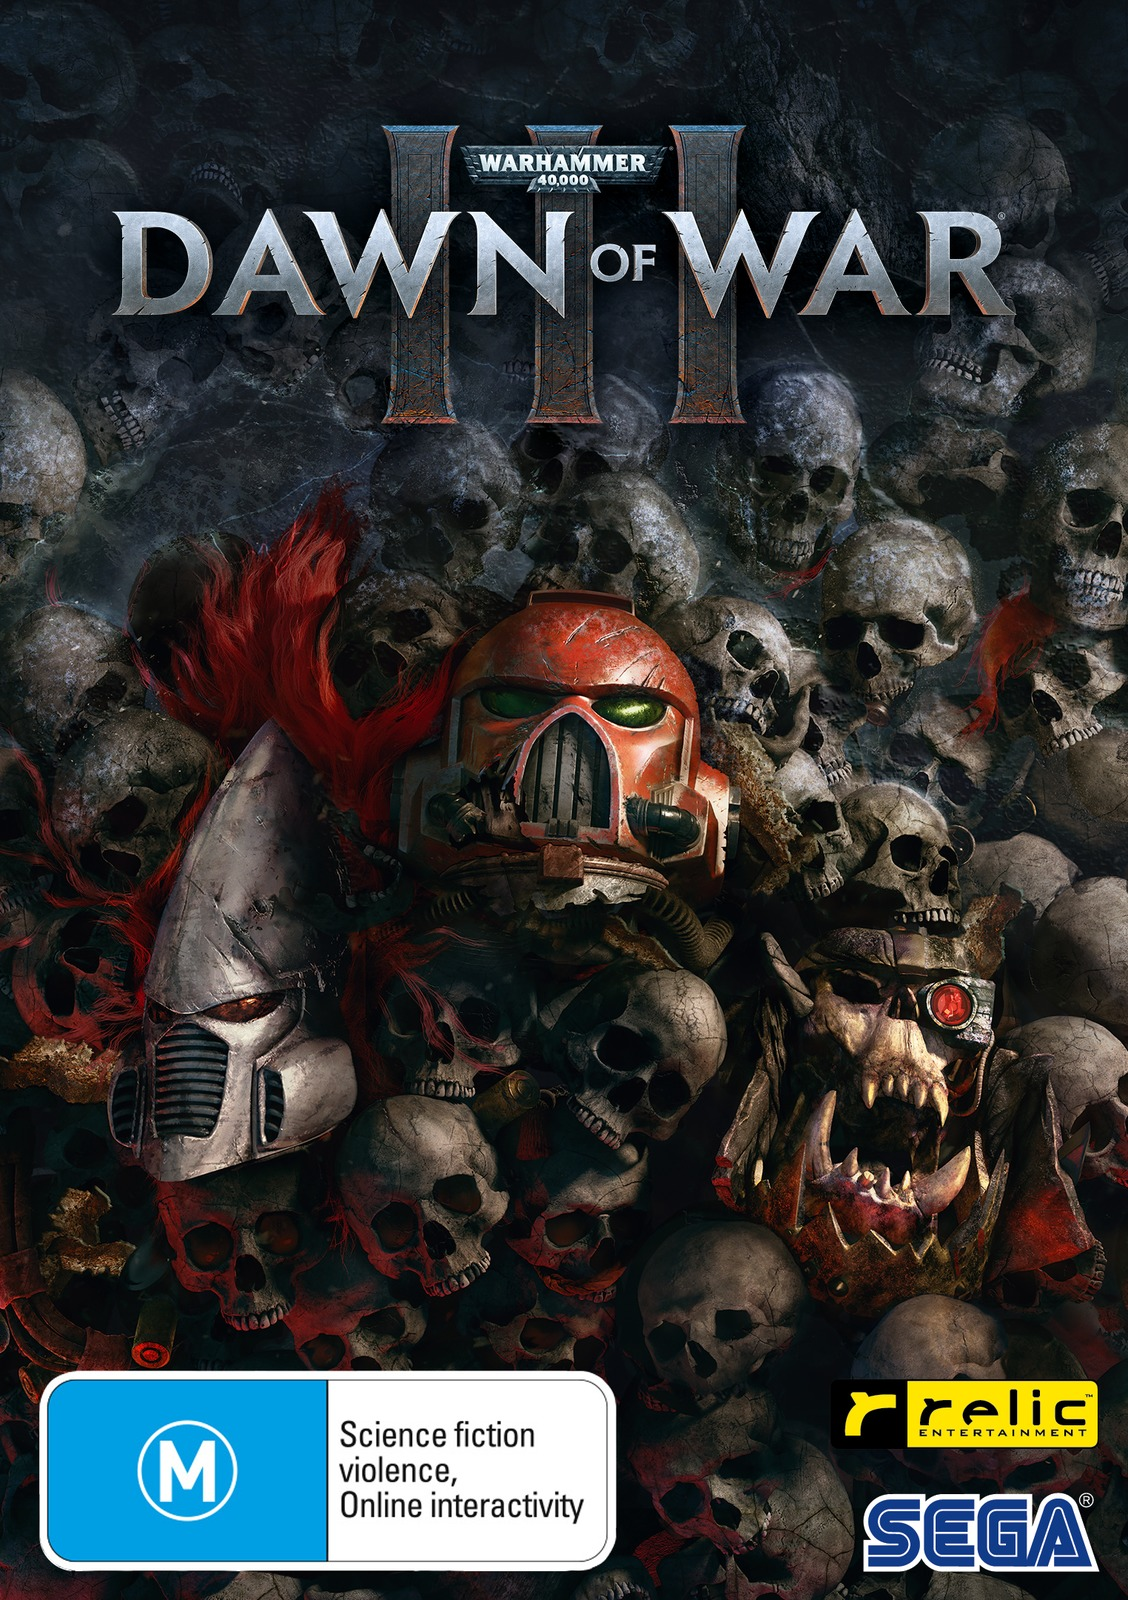 Warhammer 40,000: Dawn of War III for PC Games image